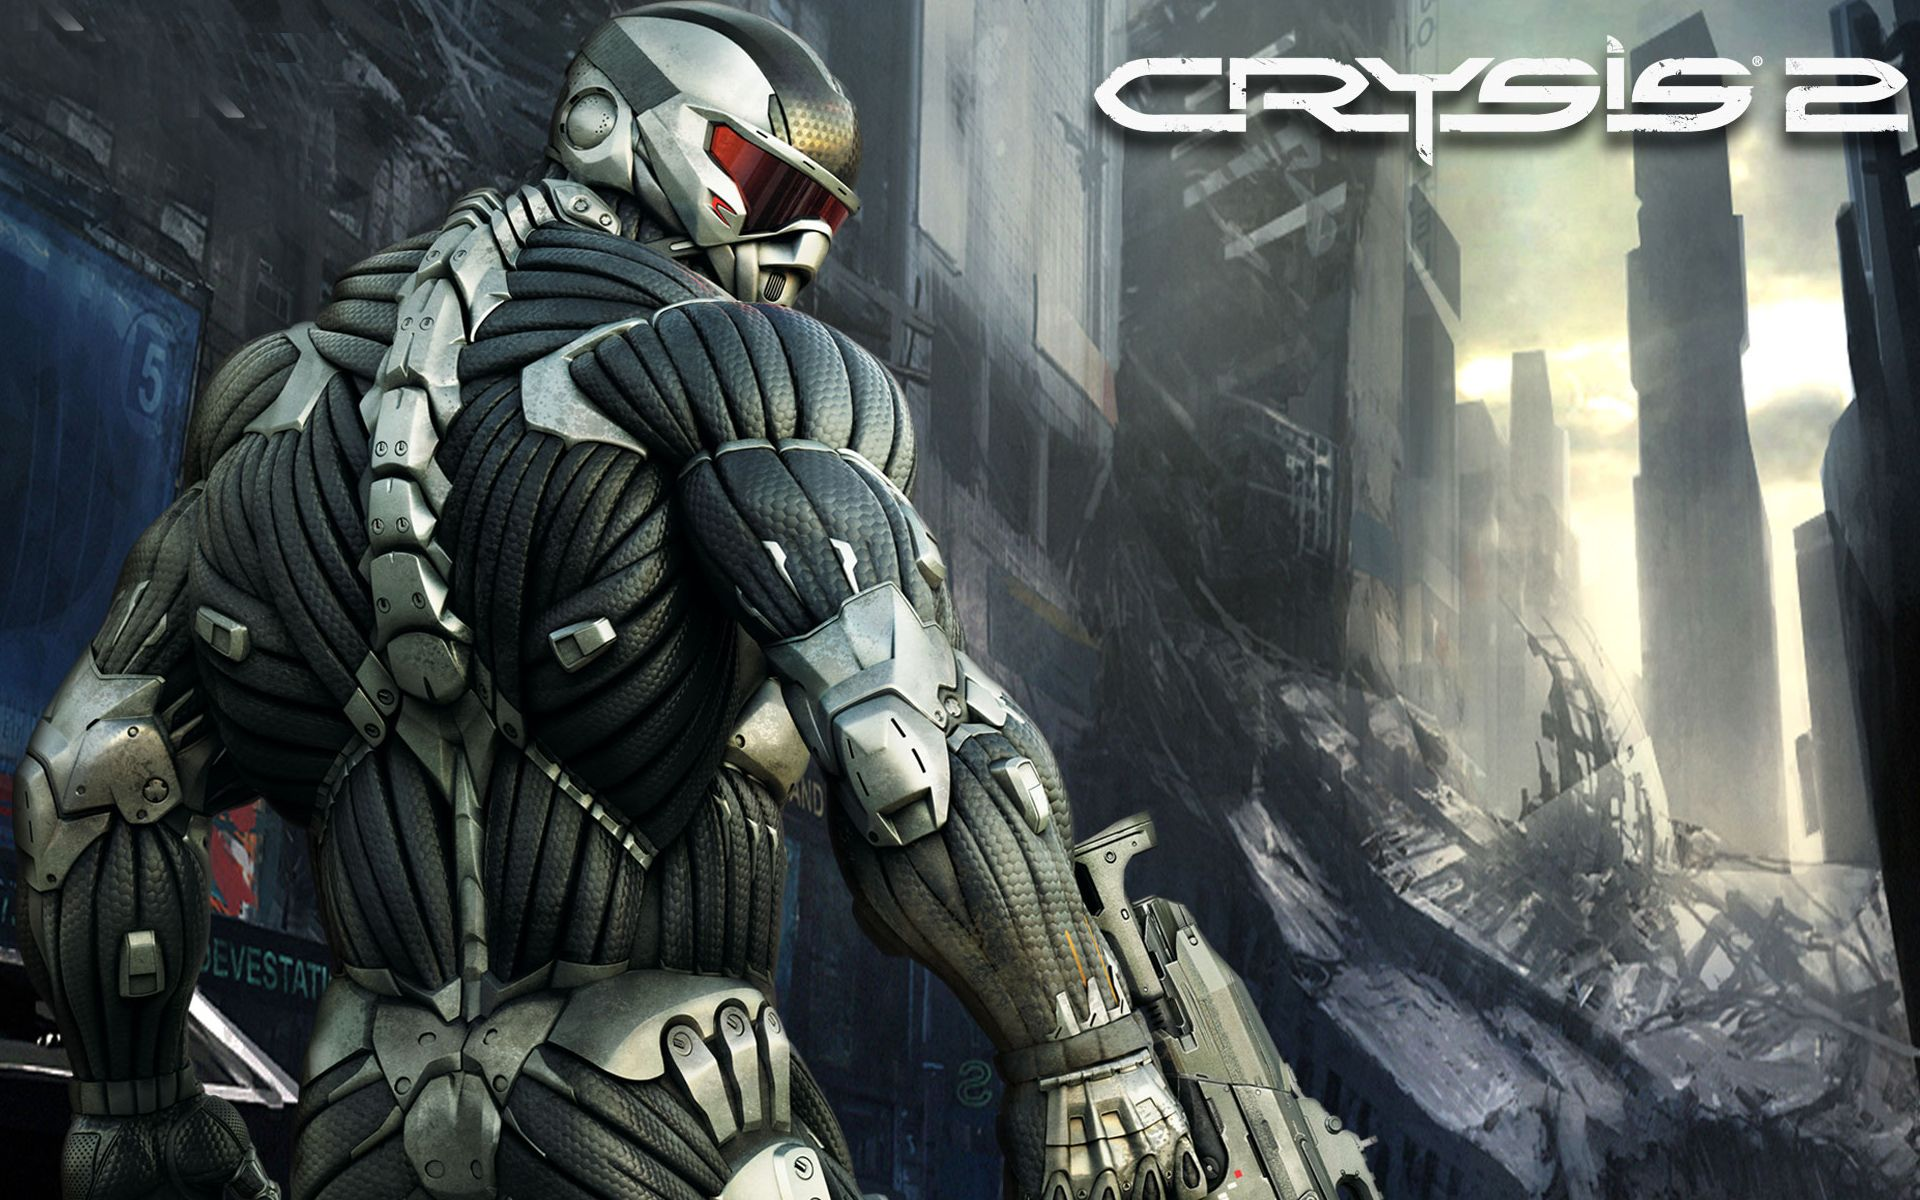 Download Gratis Crysis 2 Maximum Edition Full Version